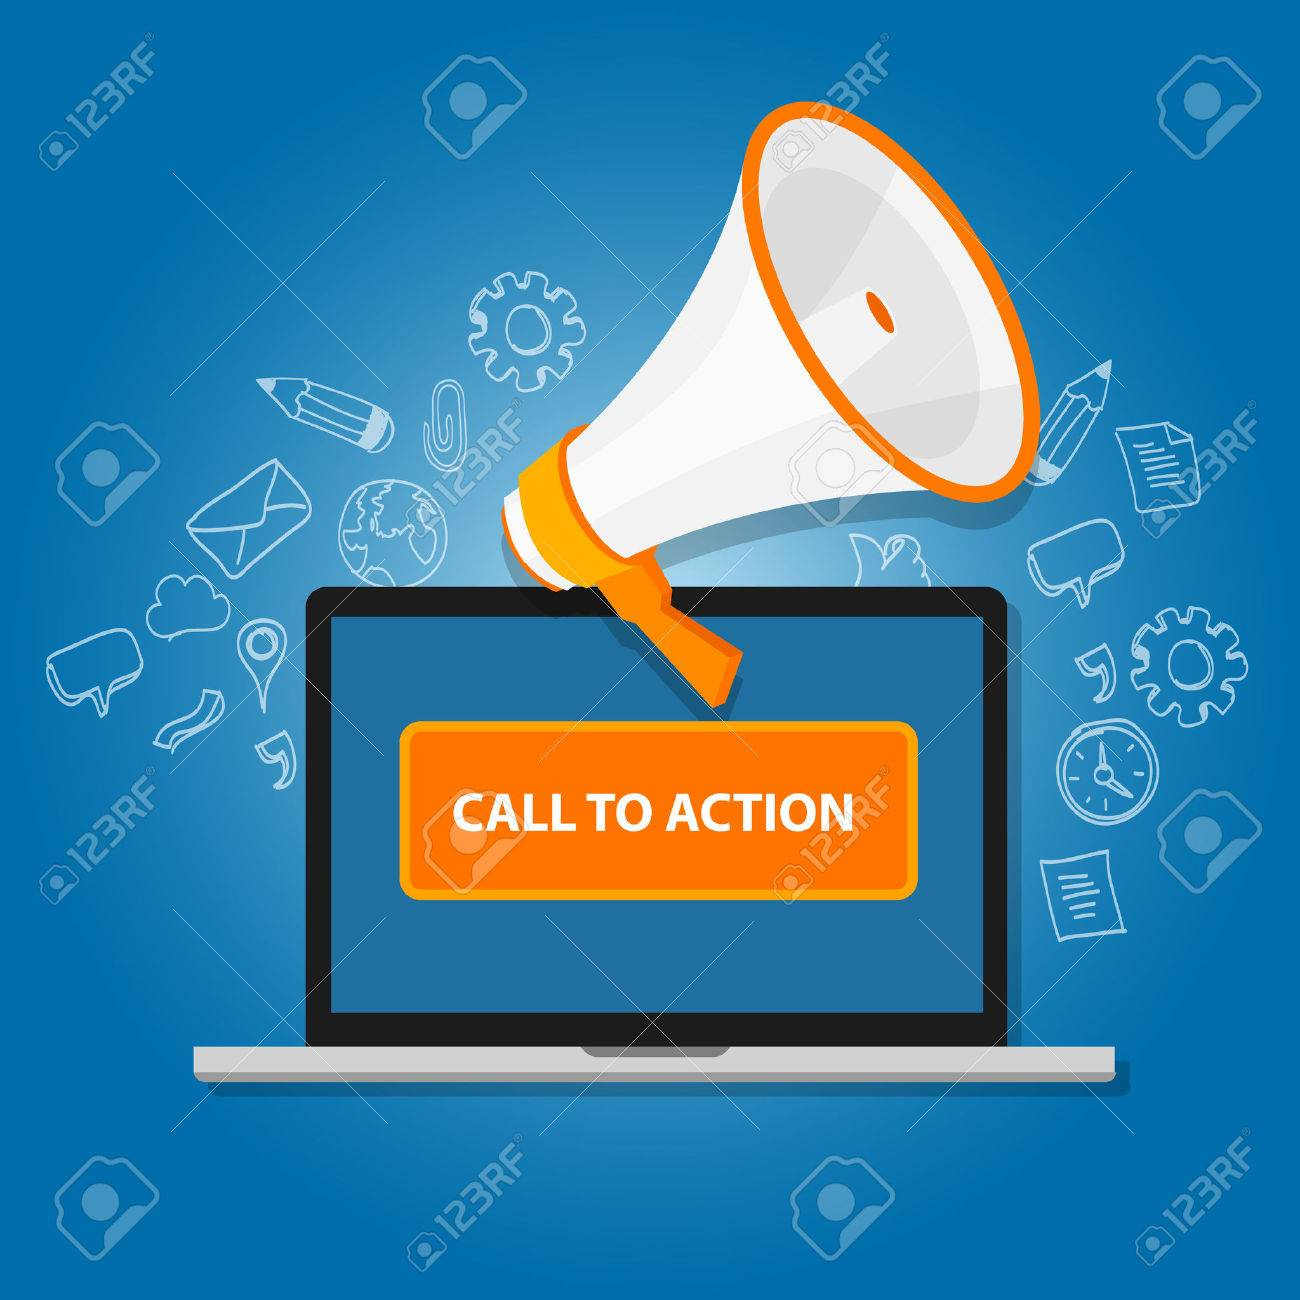 call to action button vector illustration laptop with megaphone - 51830658